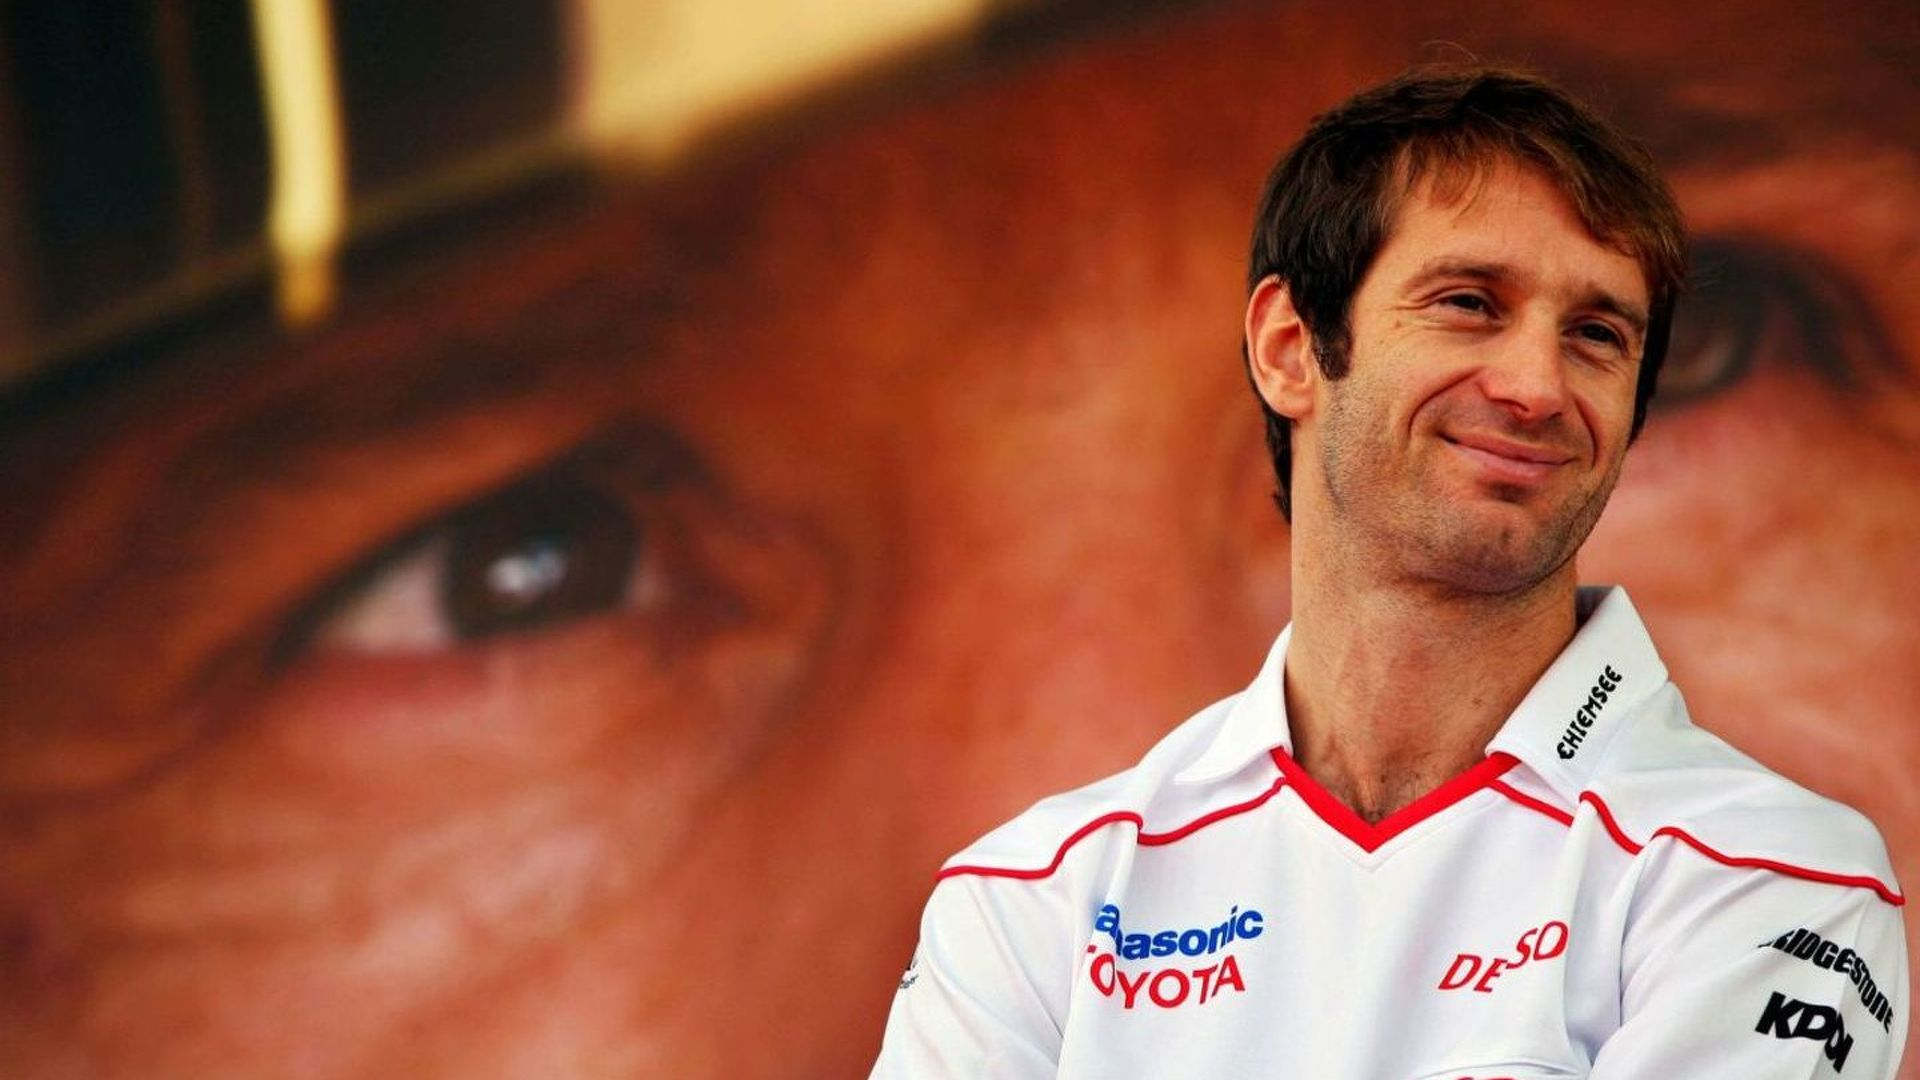 Trulli might stay at Toyota in 2010 - Howett